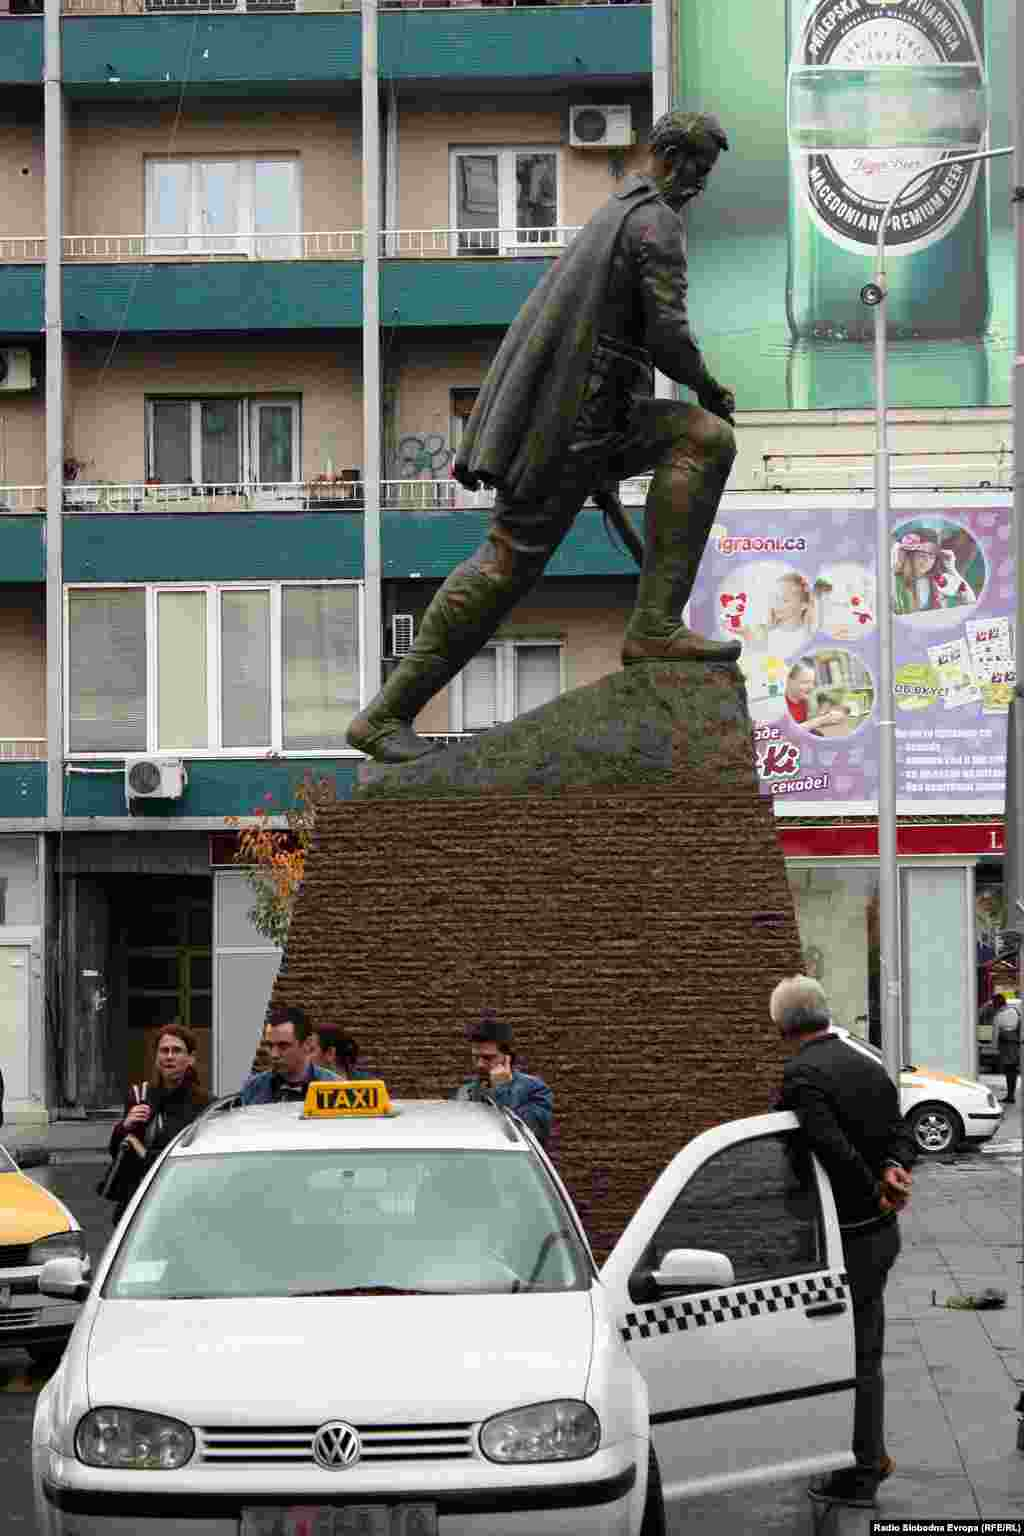 A statue of Hristo Uzunov, a fighter with Macedonia's National Liberation movement in the late 19th and early 20th century